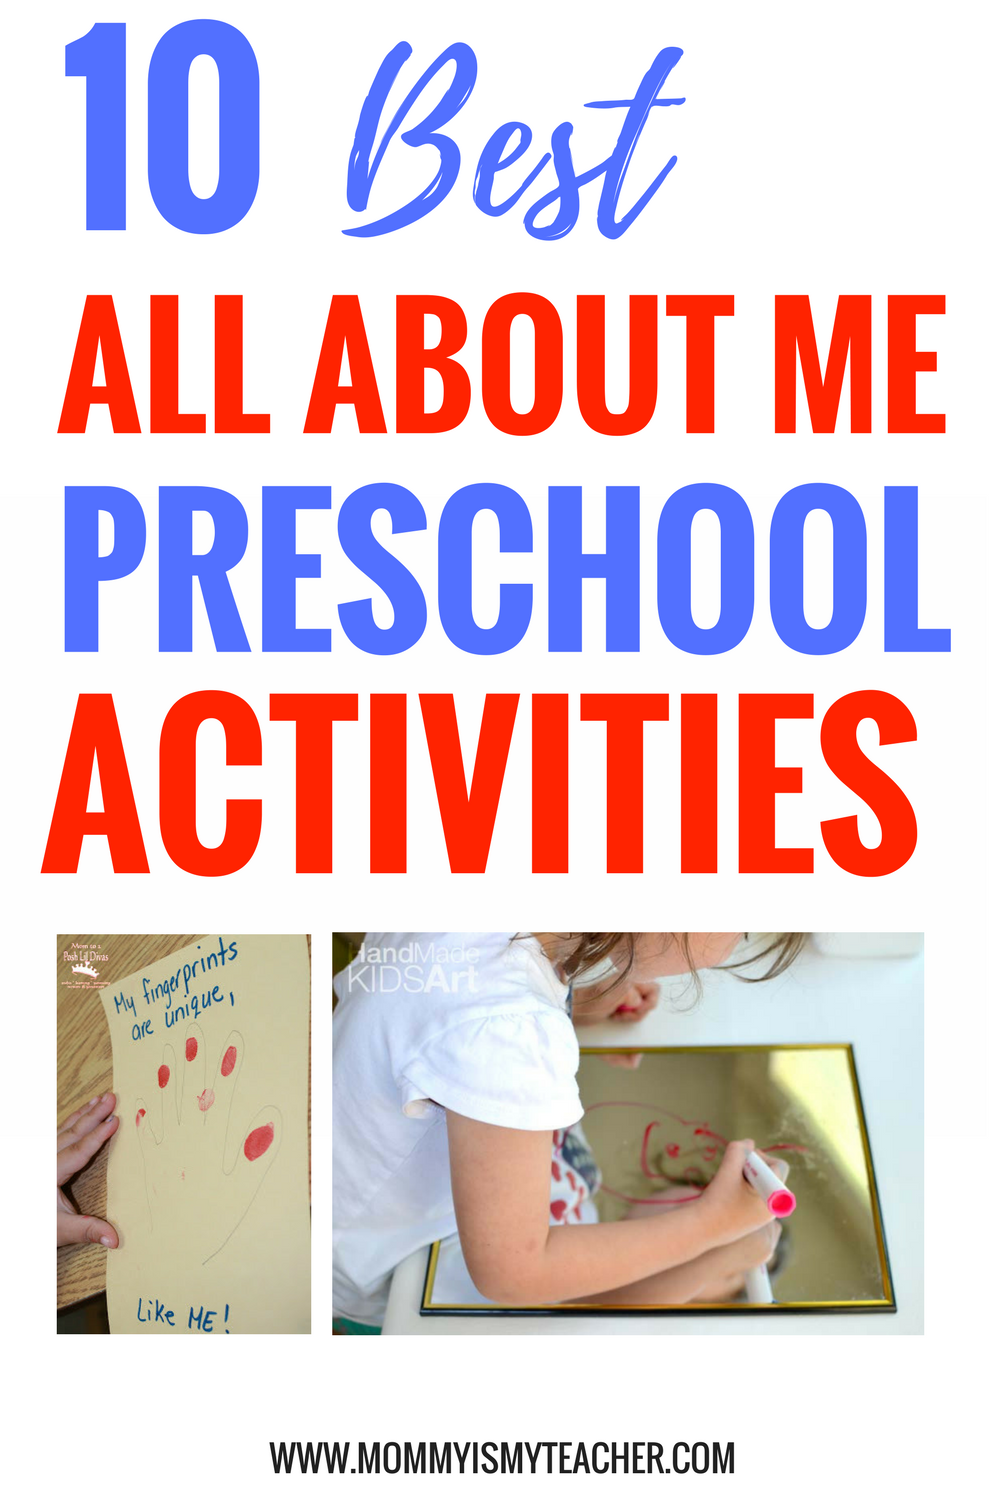 all about me preschool activities and printables.png